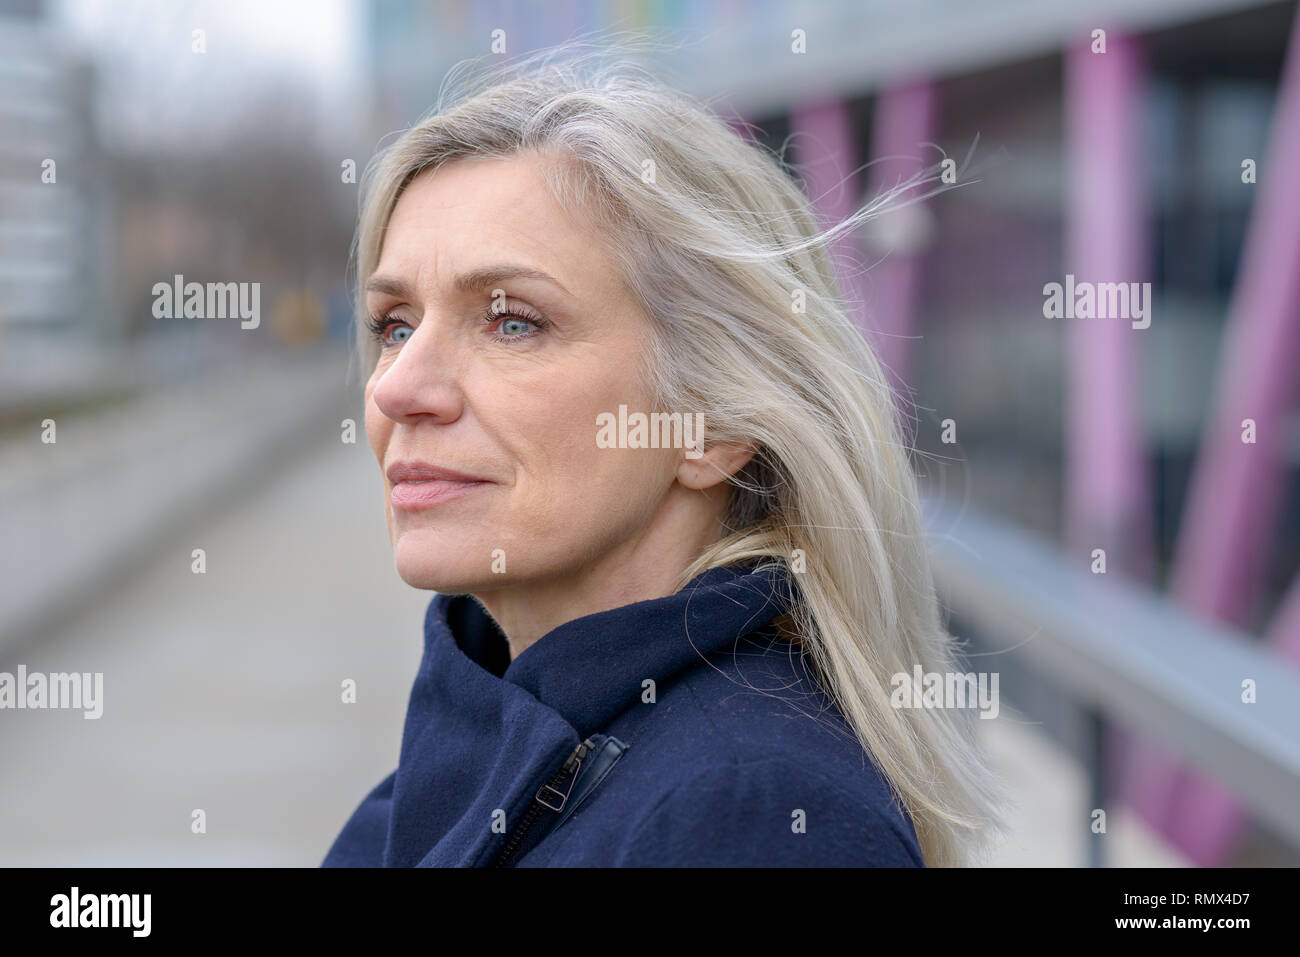 Serious woman looking intently to the side with a thoughtful expression as she stands outdoors in town on a walkway Stock Photo